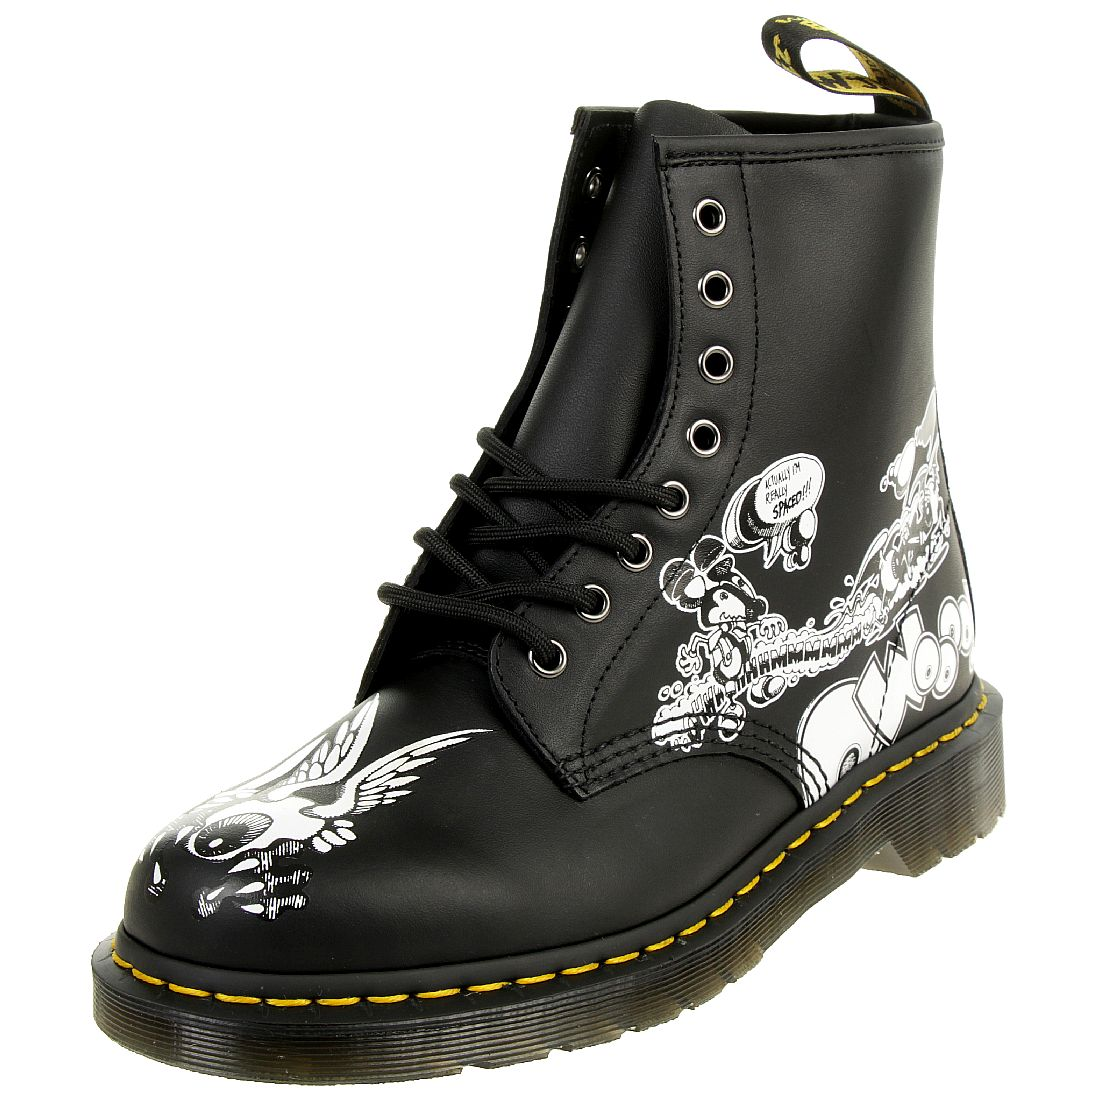 3a7b966b8e5c58 Dr. Martens 1460 RG Eye BW Backhand Black White Unisex Stiefel Boots Rick  Griffin schwarz